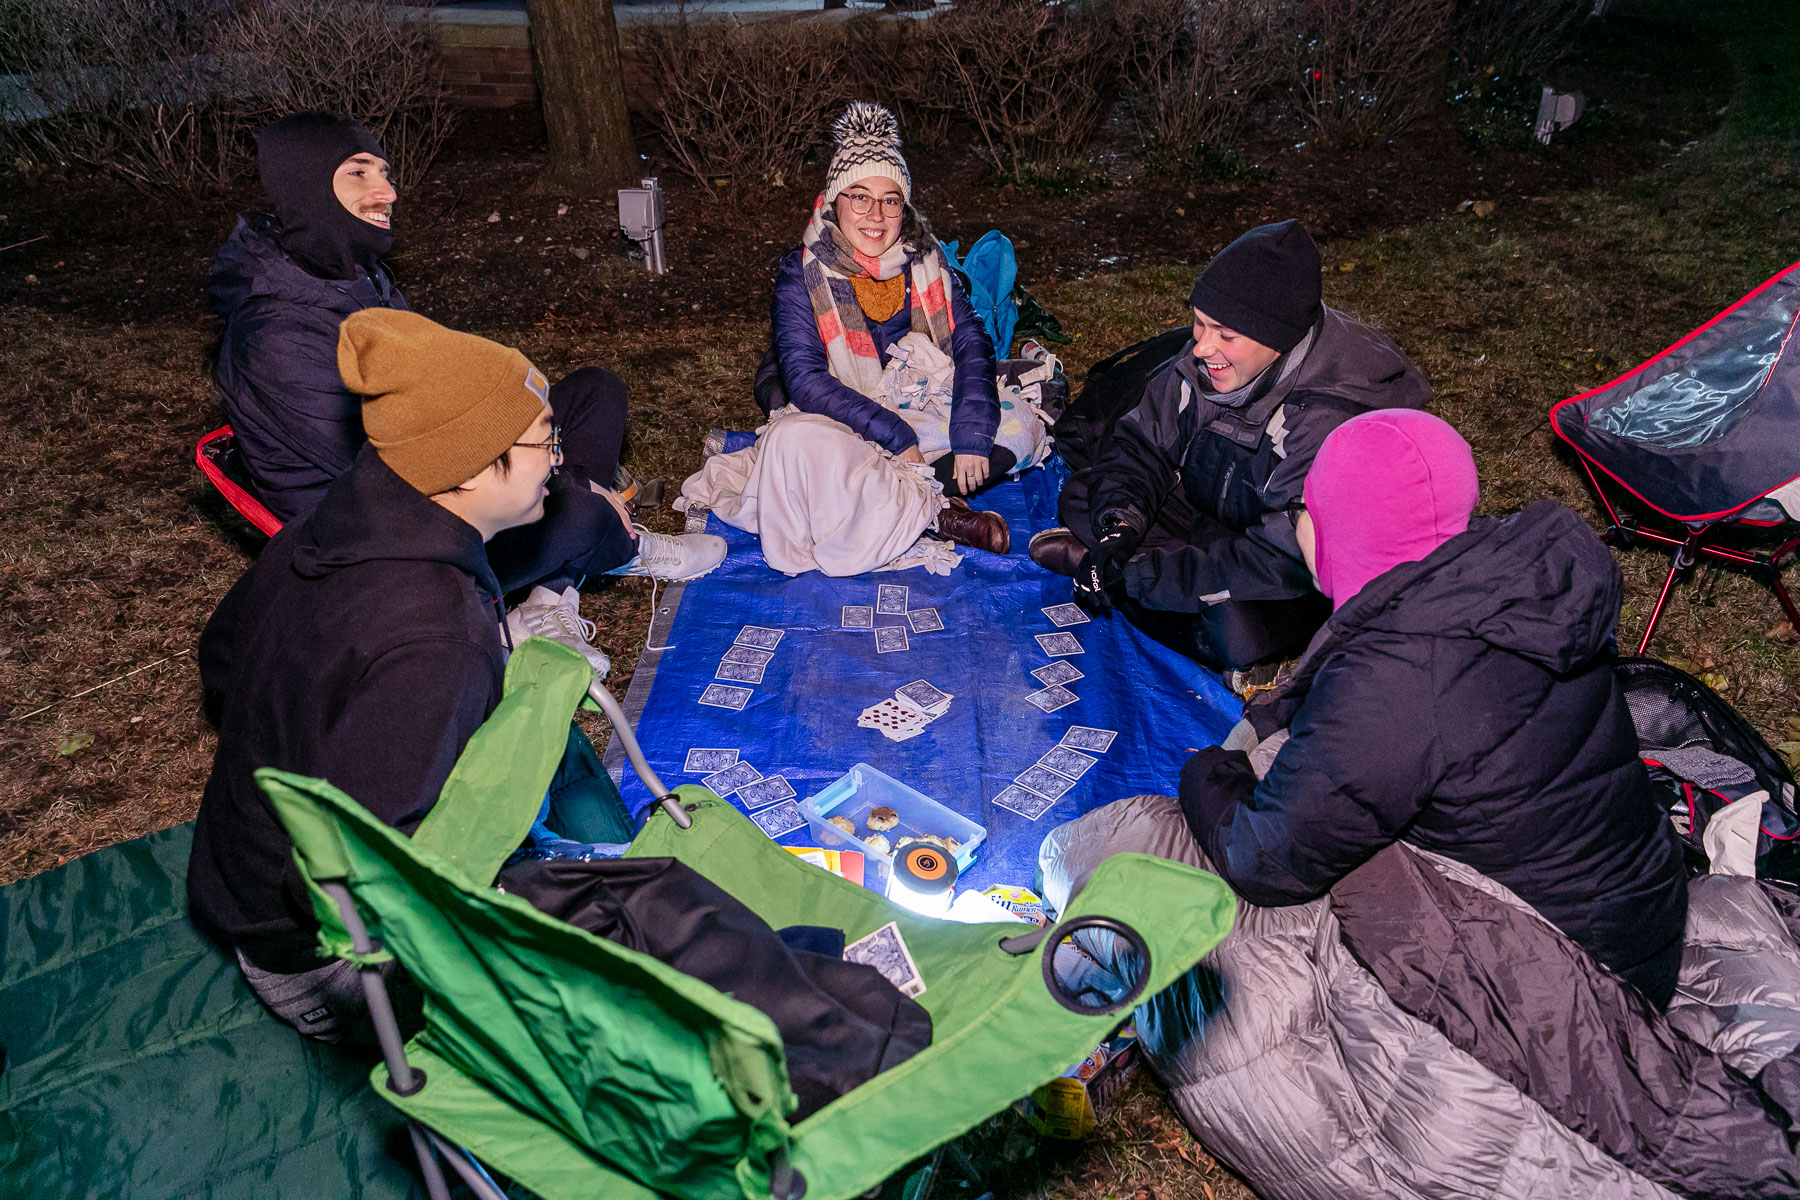 Sleepers kept their spirits up in the cold weather by bringing snacks and games. (DePaul University/Randall Spriggs)